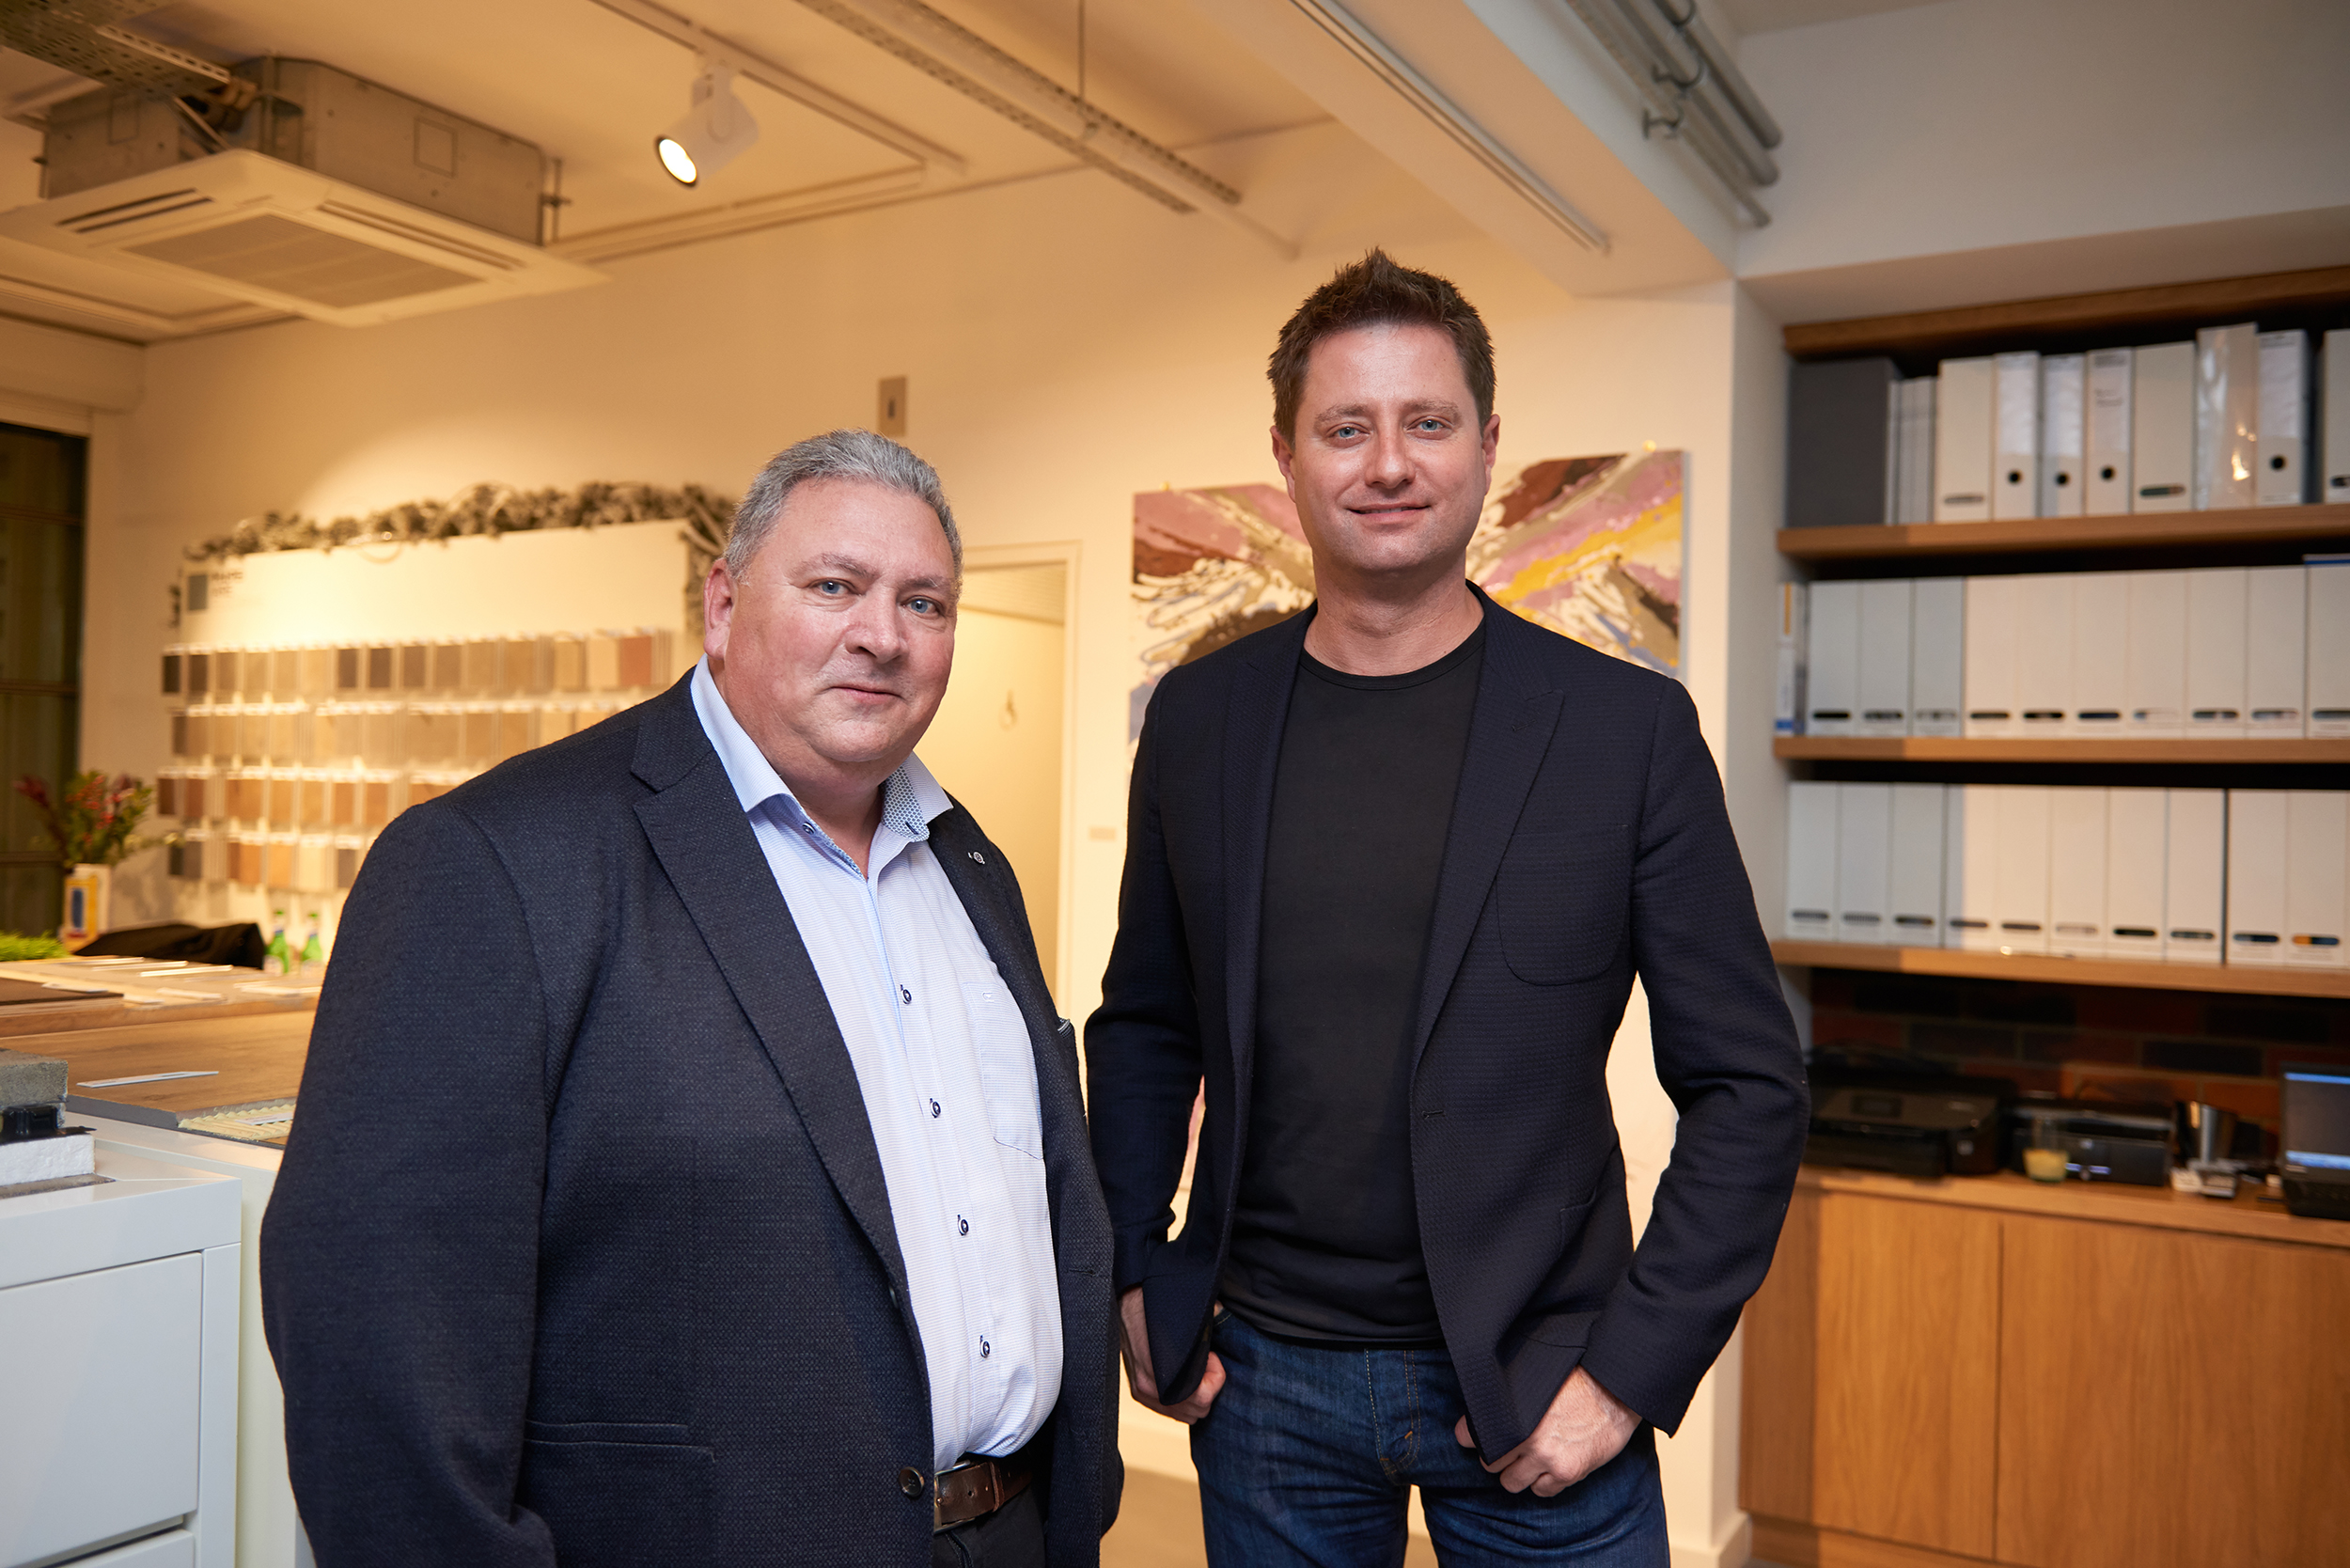 London Clerkenwell Photography Event with George Clarke